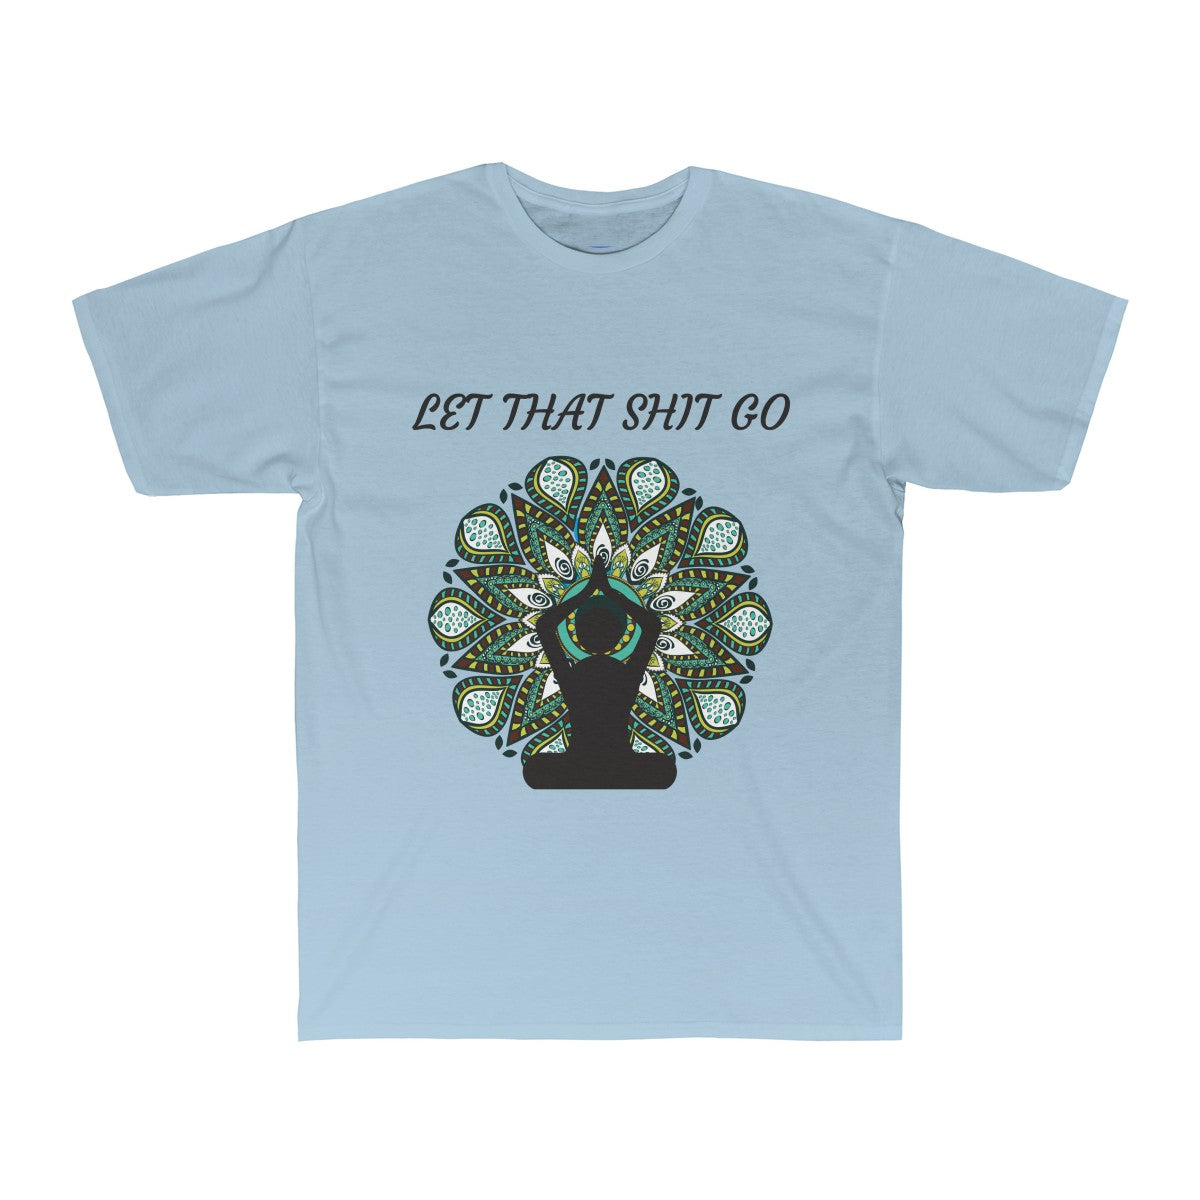 let that shit go yoga shirt in light blue